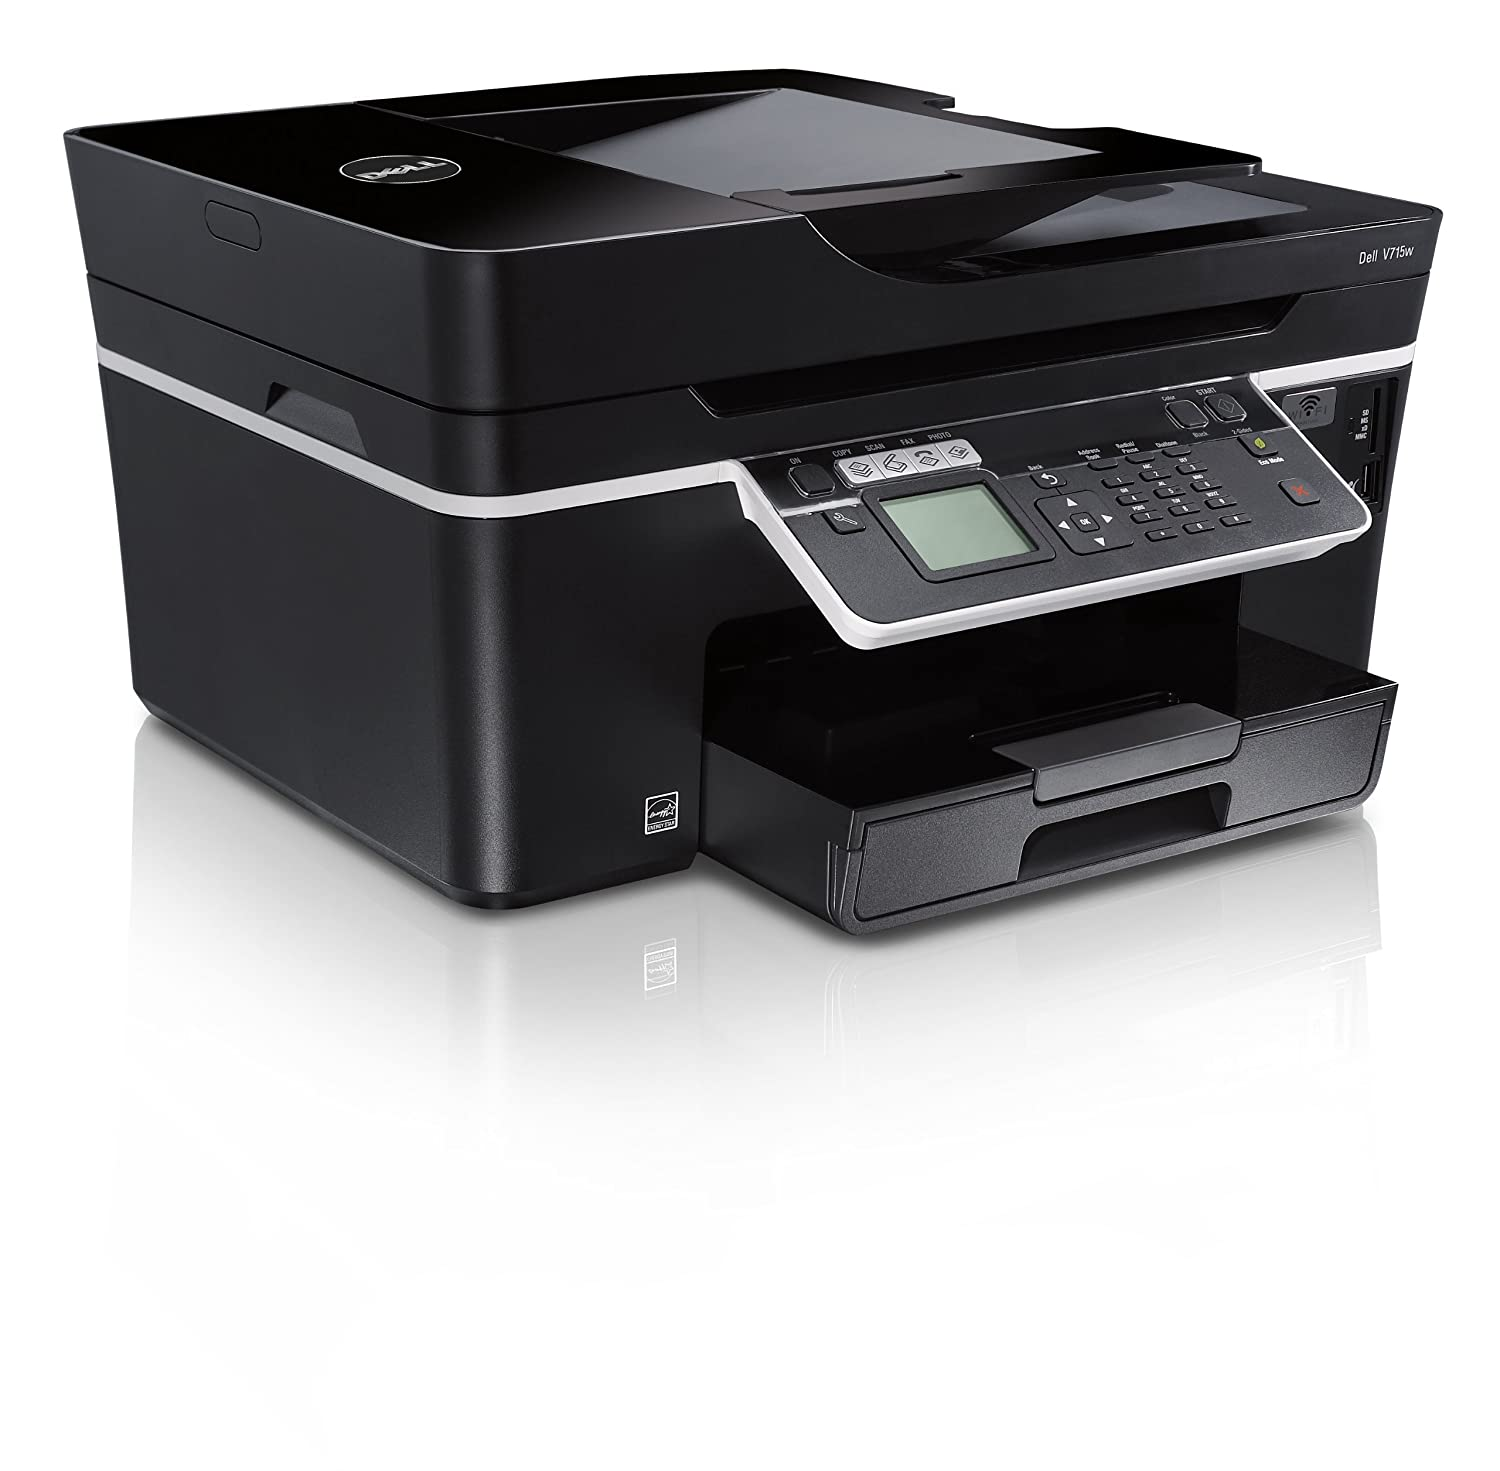 Download dell v715w all in one wireless inkjet printer drivers.